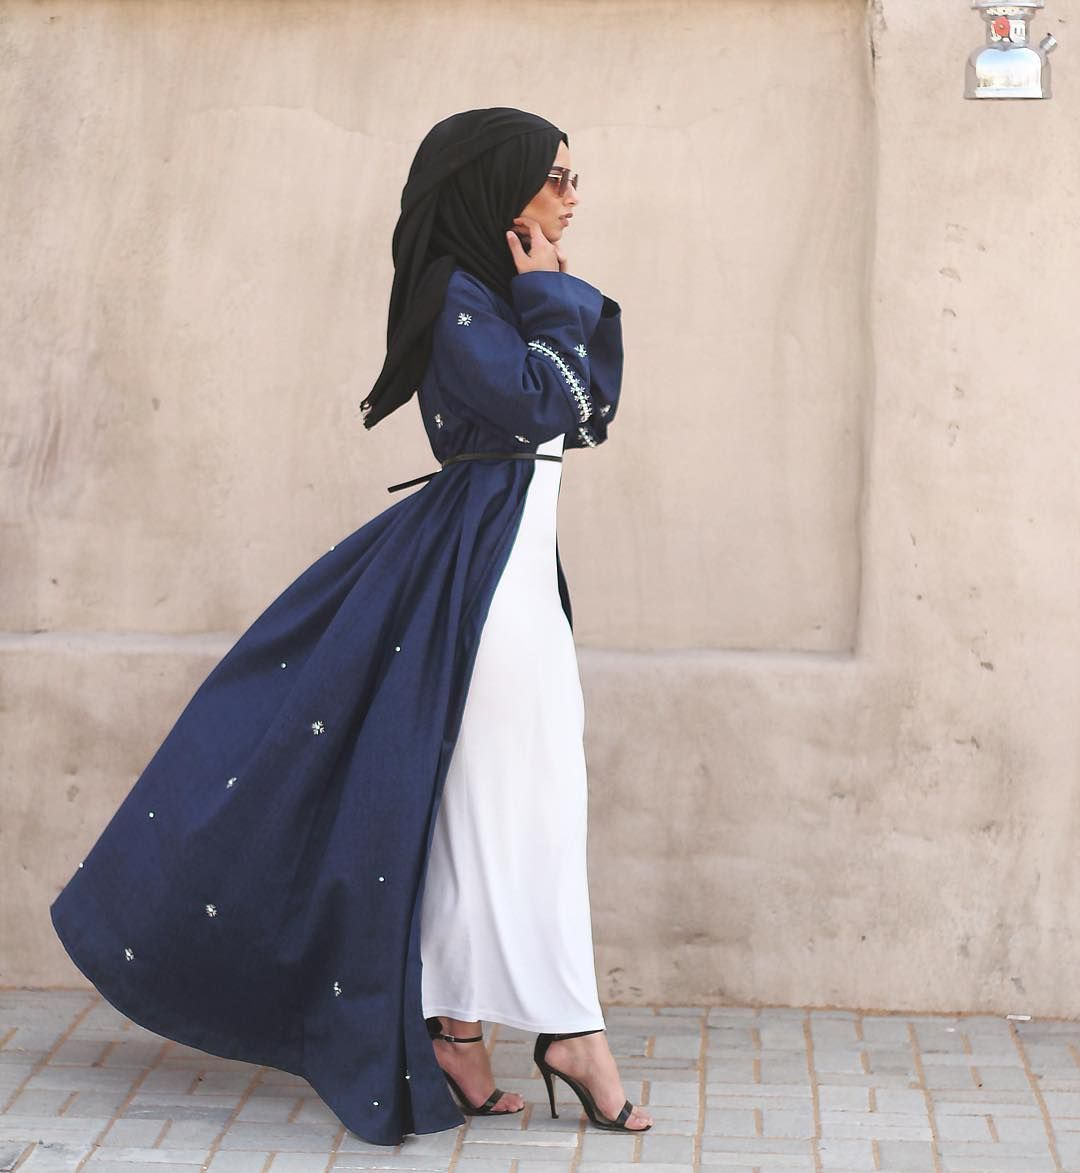 Hijab Fashion Hijab Fashion Pinterest Black Hijab Fashion And Muslim Fashion